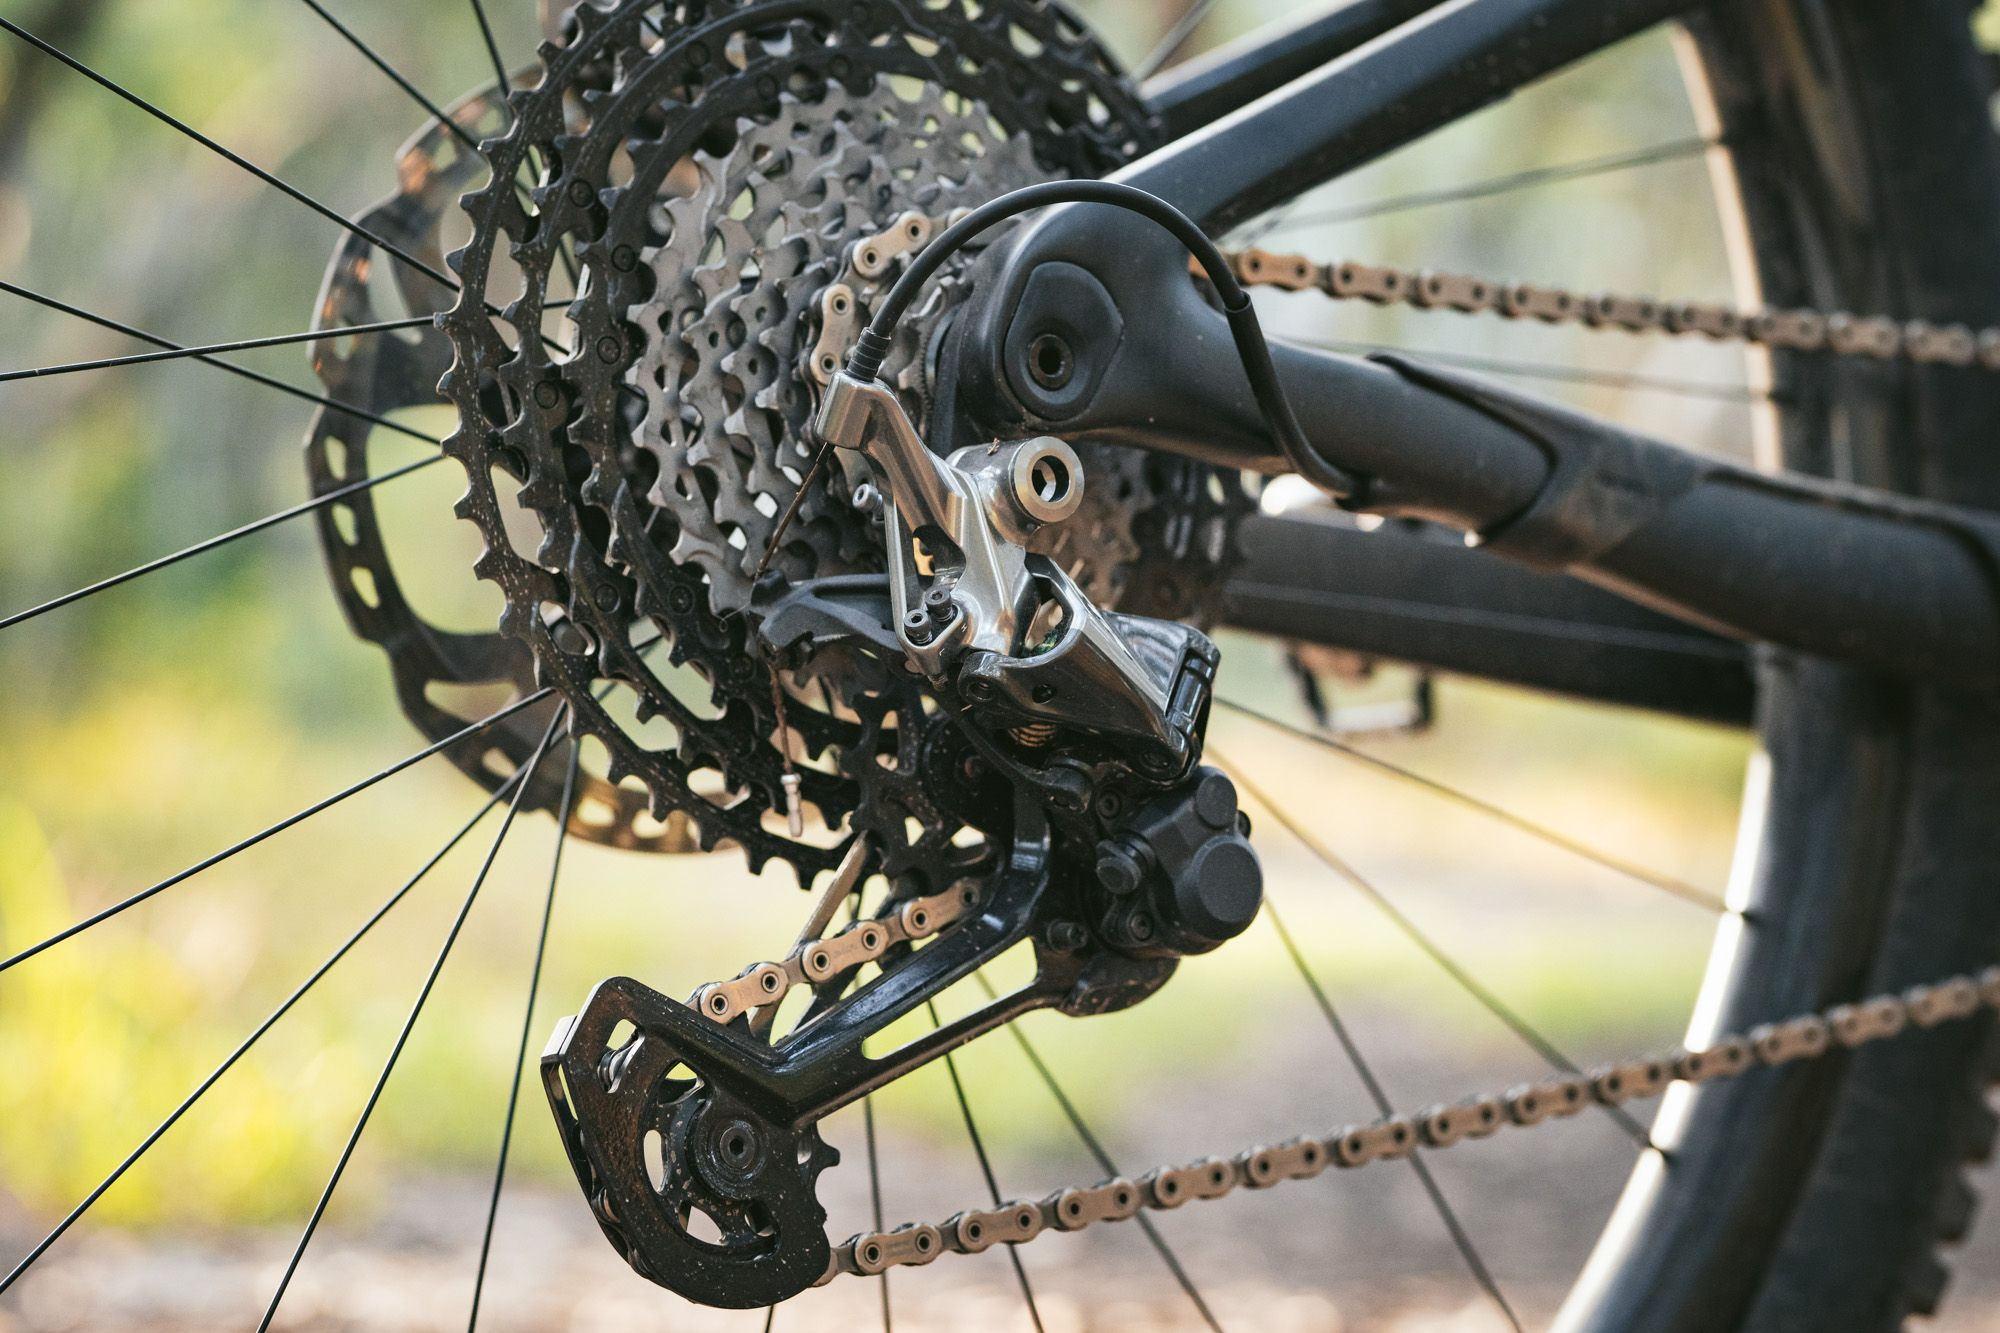 a34604afc44 25/1/17: We had the chance to join Shimano and their development team last  week in Calpe on the Valencian coast in Spain for what had promi…